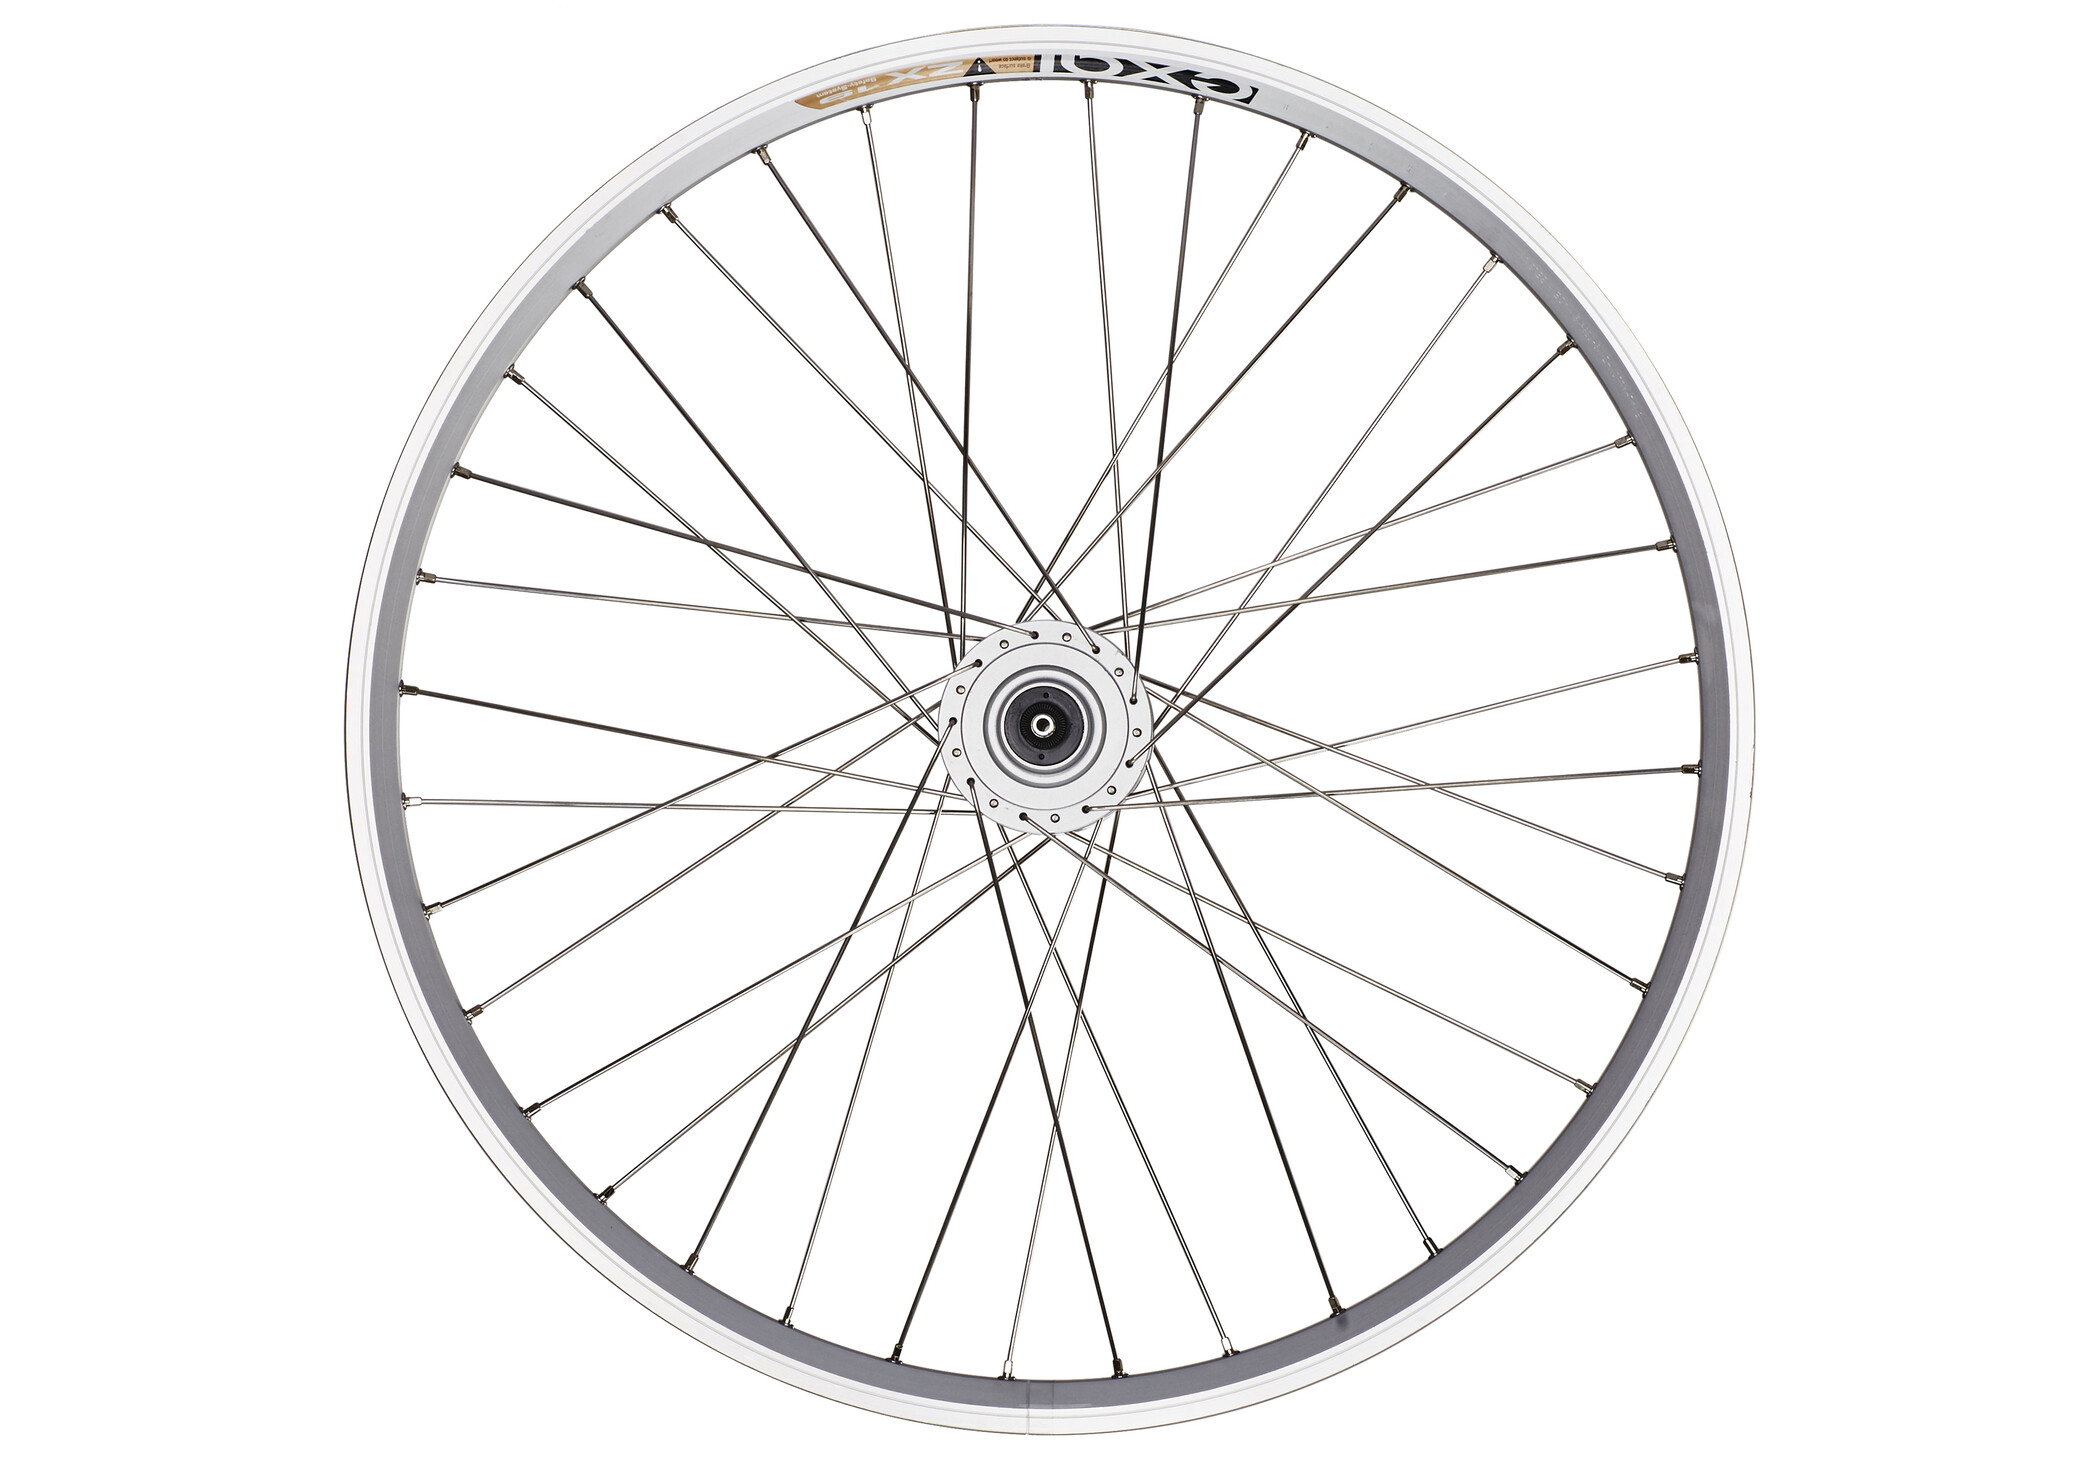 Exal Forhjul Hjul 26 x 1.75 26 x 1.75, Navdynamo, DH3N30, Quick release, 36L, silver (2019) | Wheelset